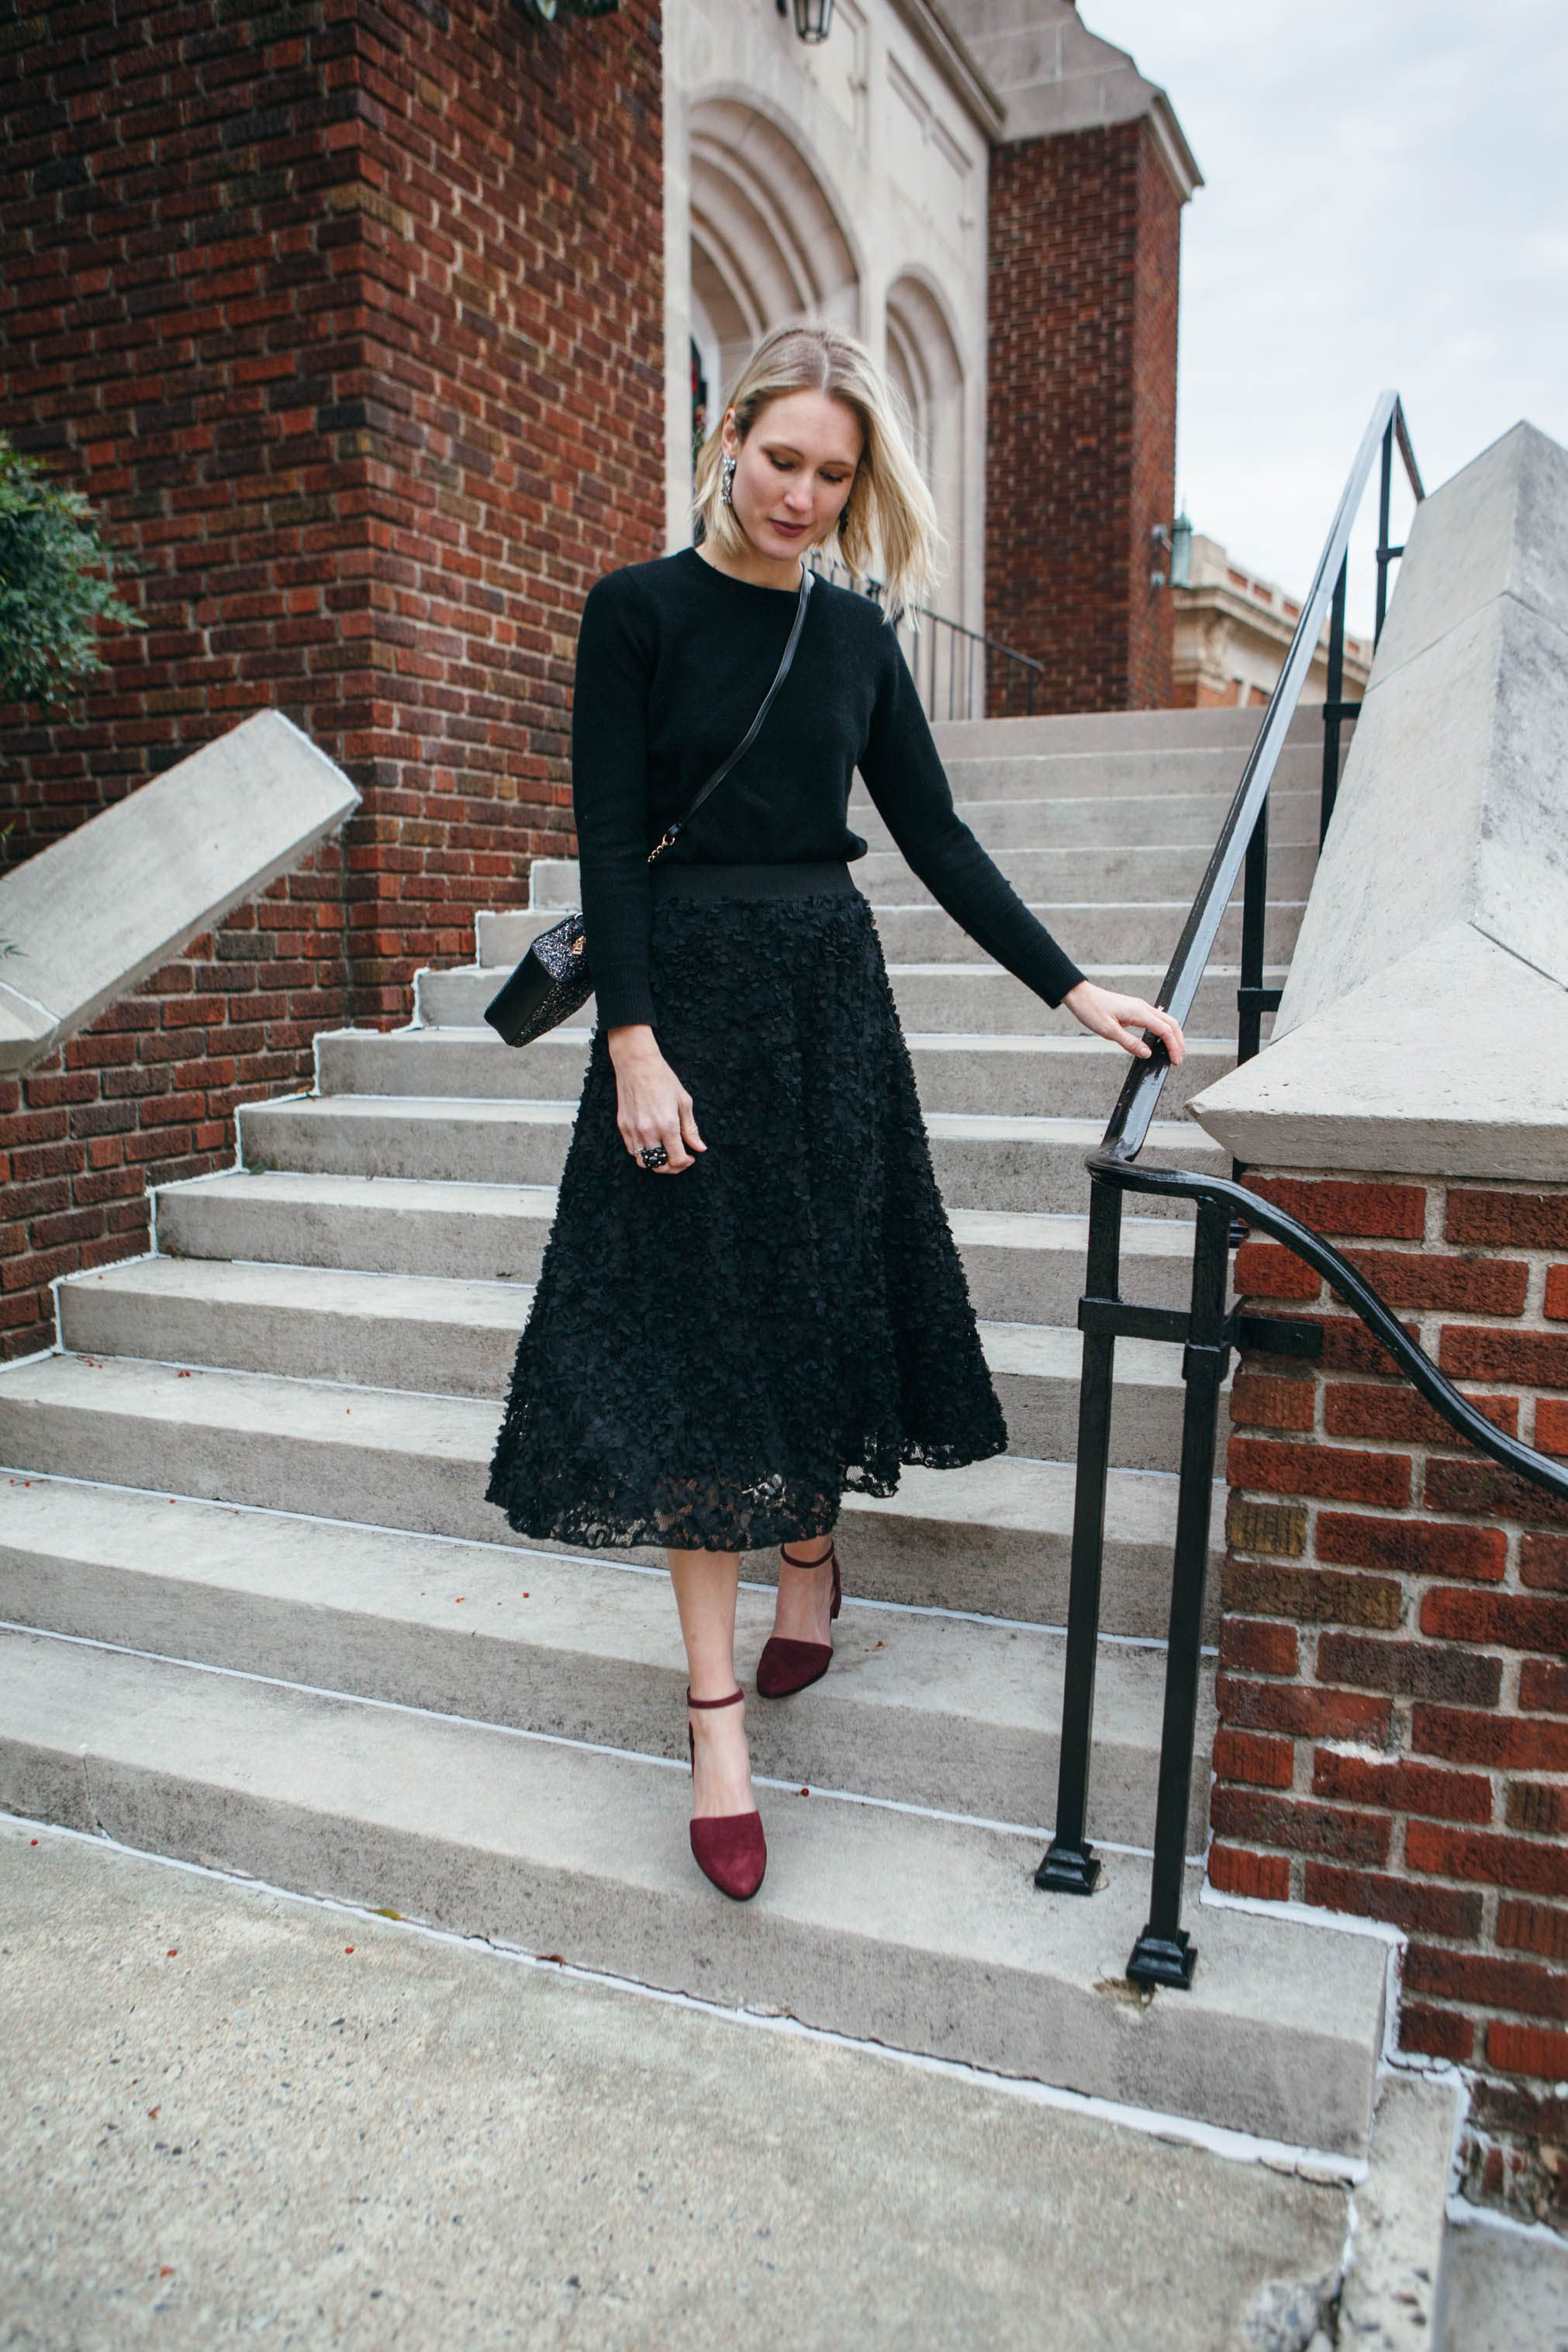 Fall eve stylish outfits forecast to wear in summer in 2019